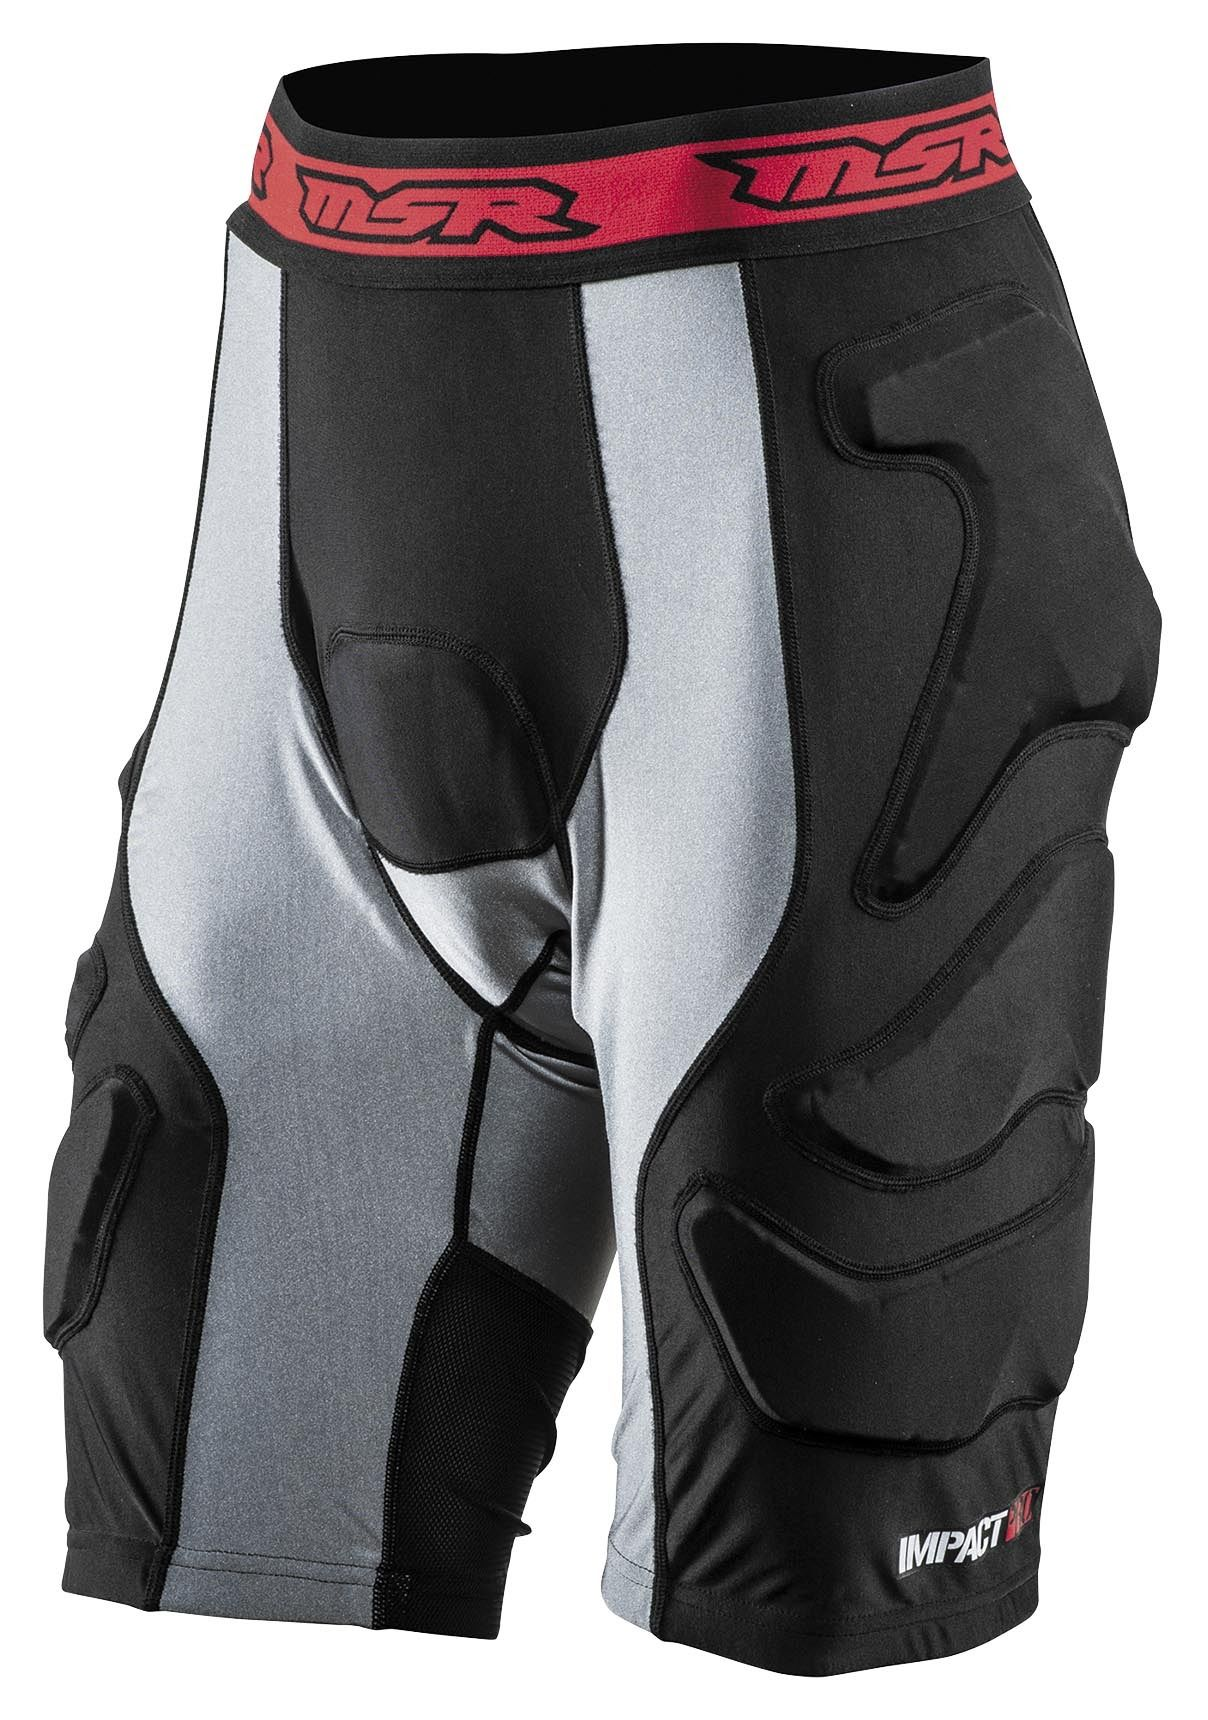 Msr Impact Pro Padded Riding Shorts Cycle Gear